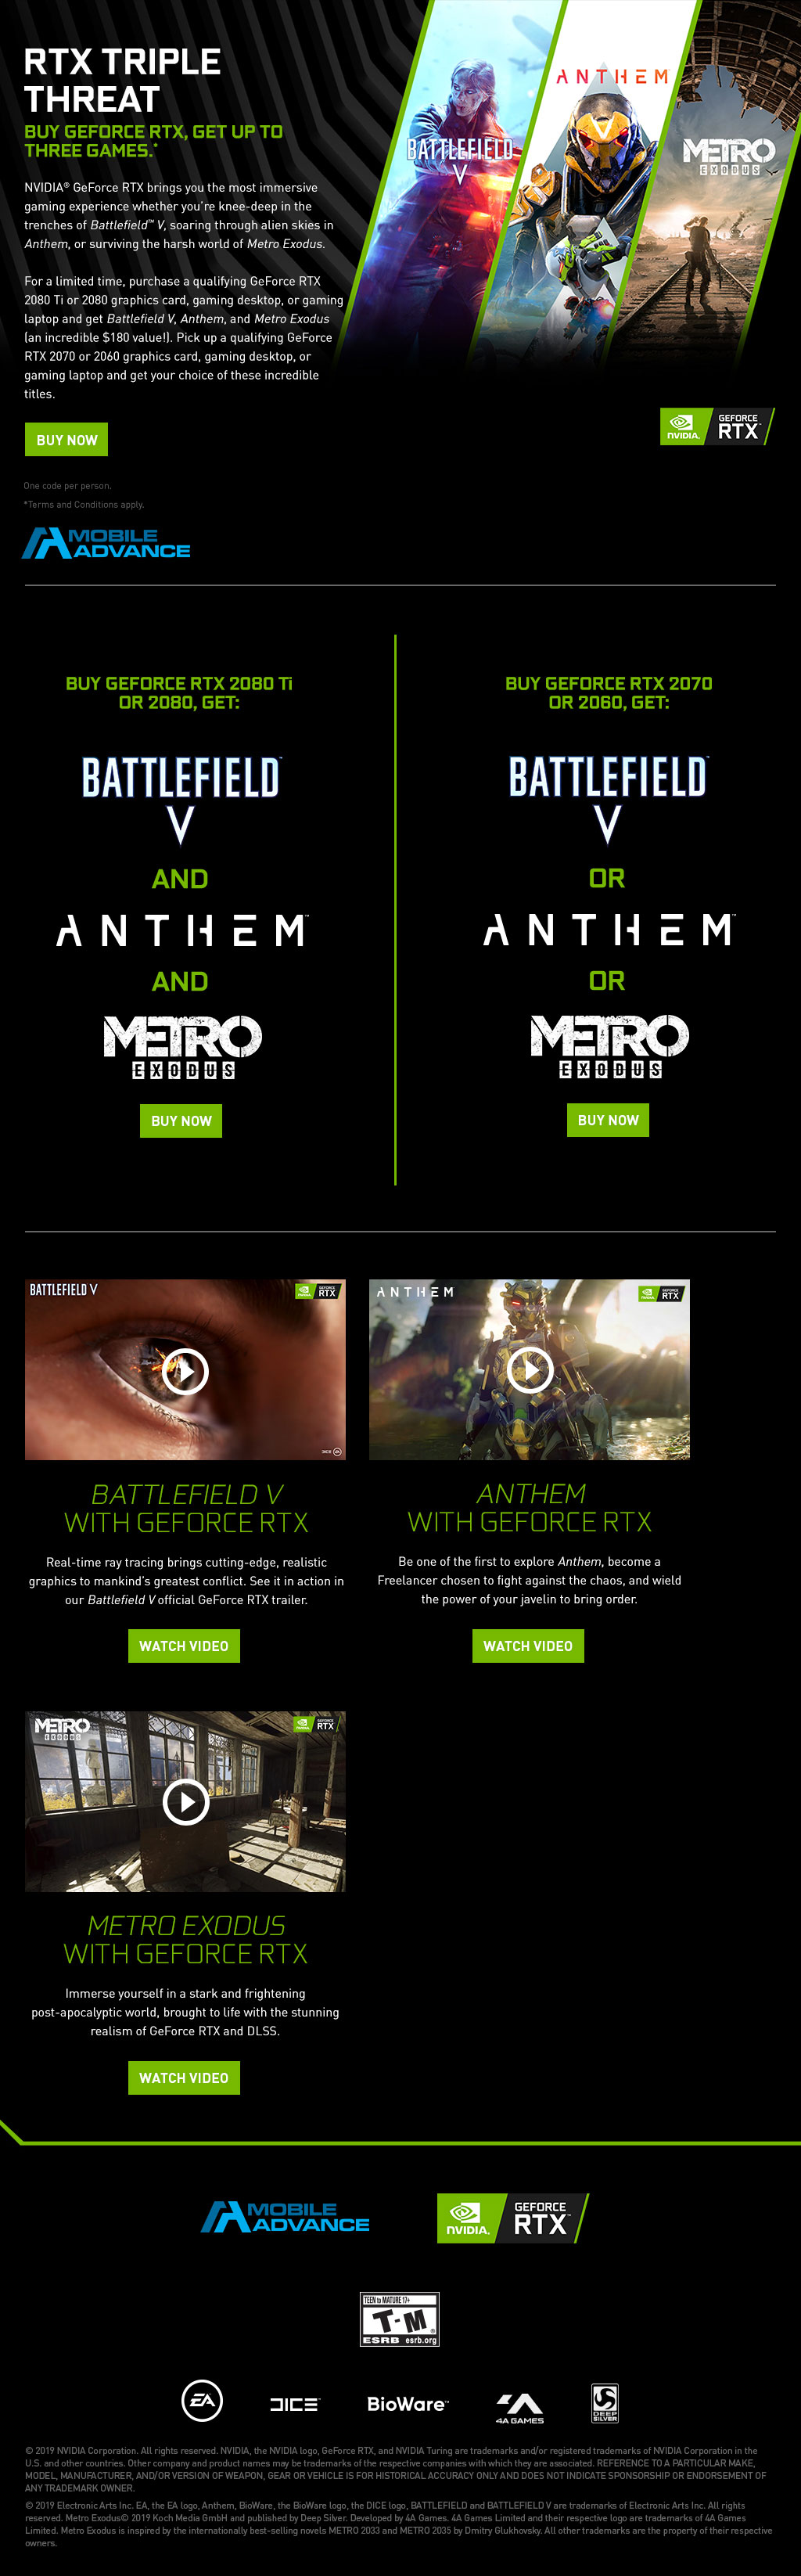 geforce-triple-threat-desktop.jpg